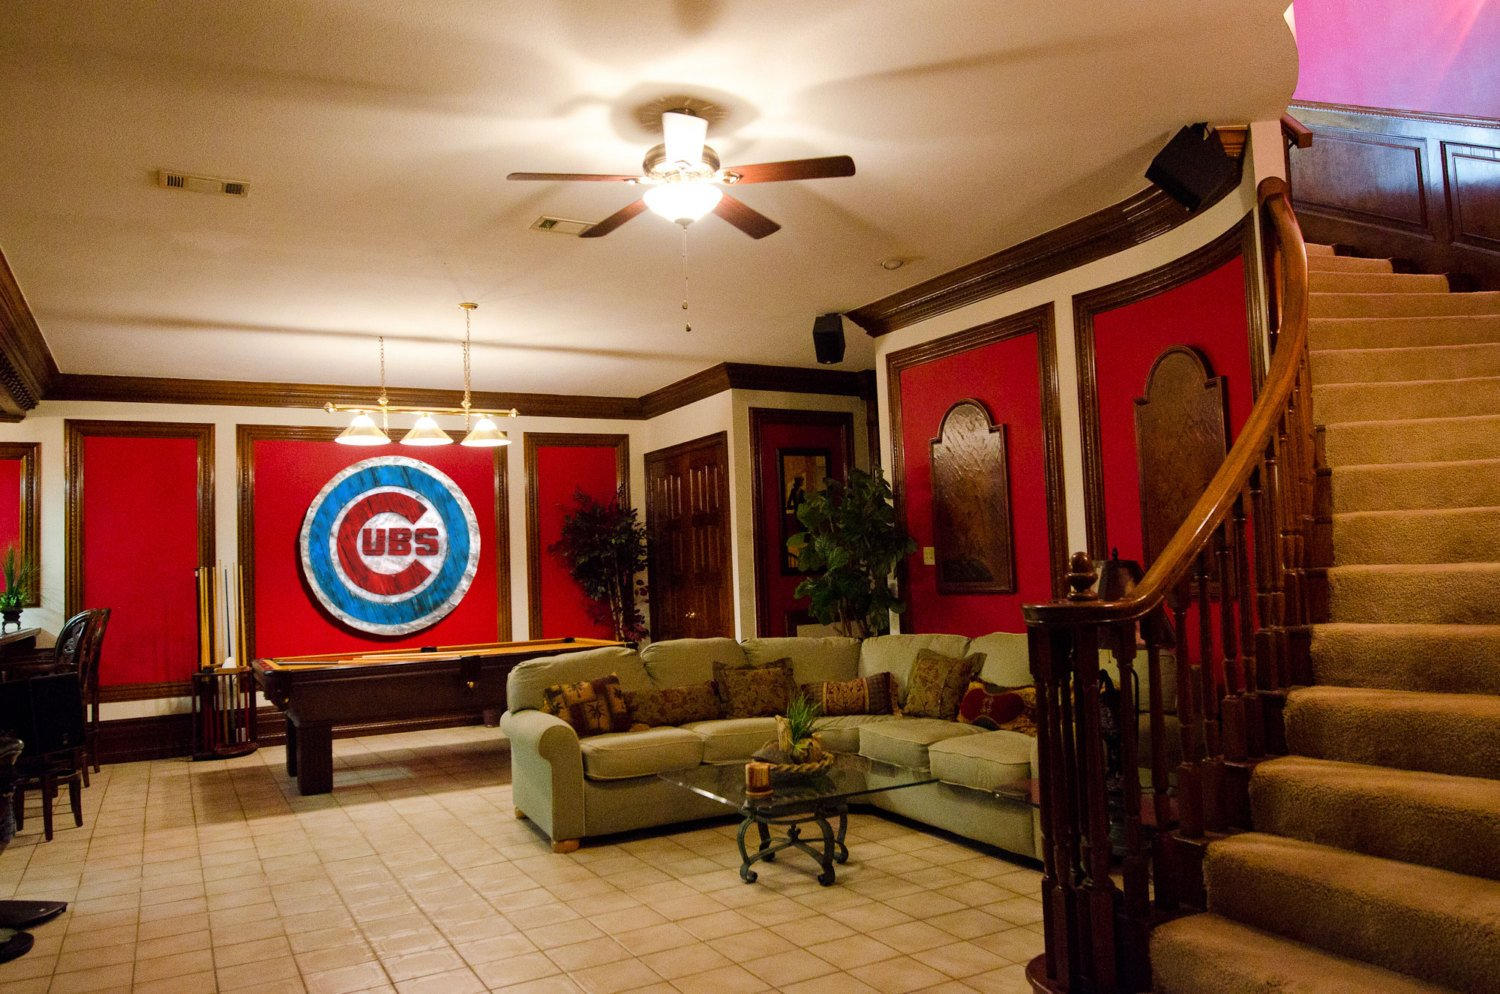 Home Interior Pictures Wall Decor Luxury Chicago Cubs Handmade Distressed Wood Sign Vintage Art Weathered Recycled Baseball Home